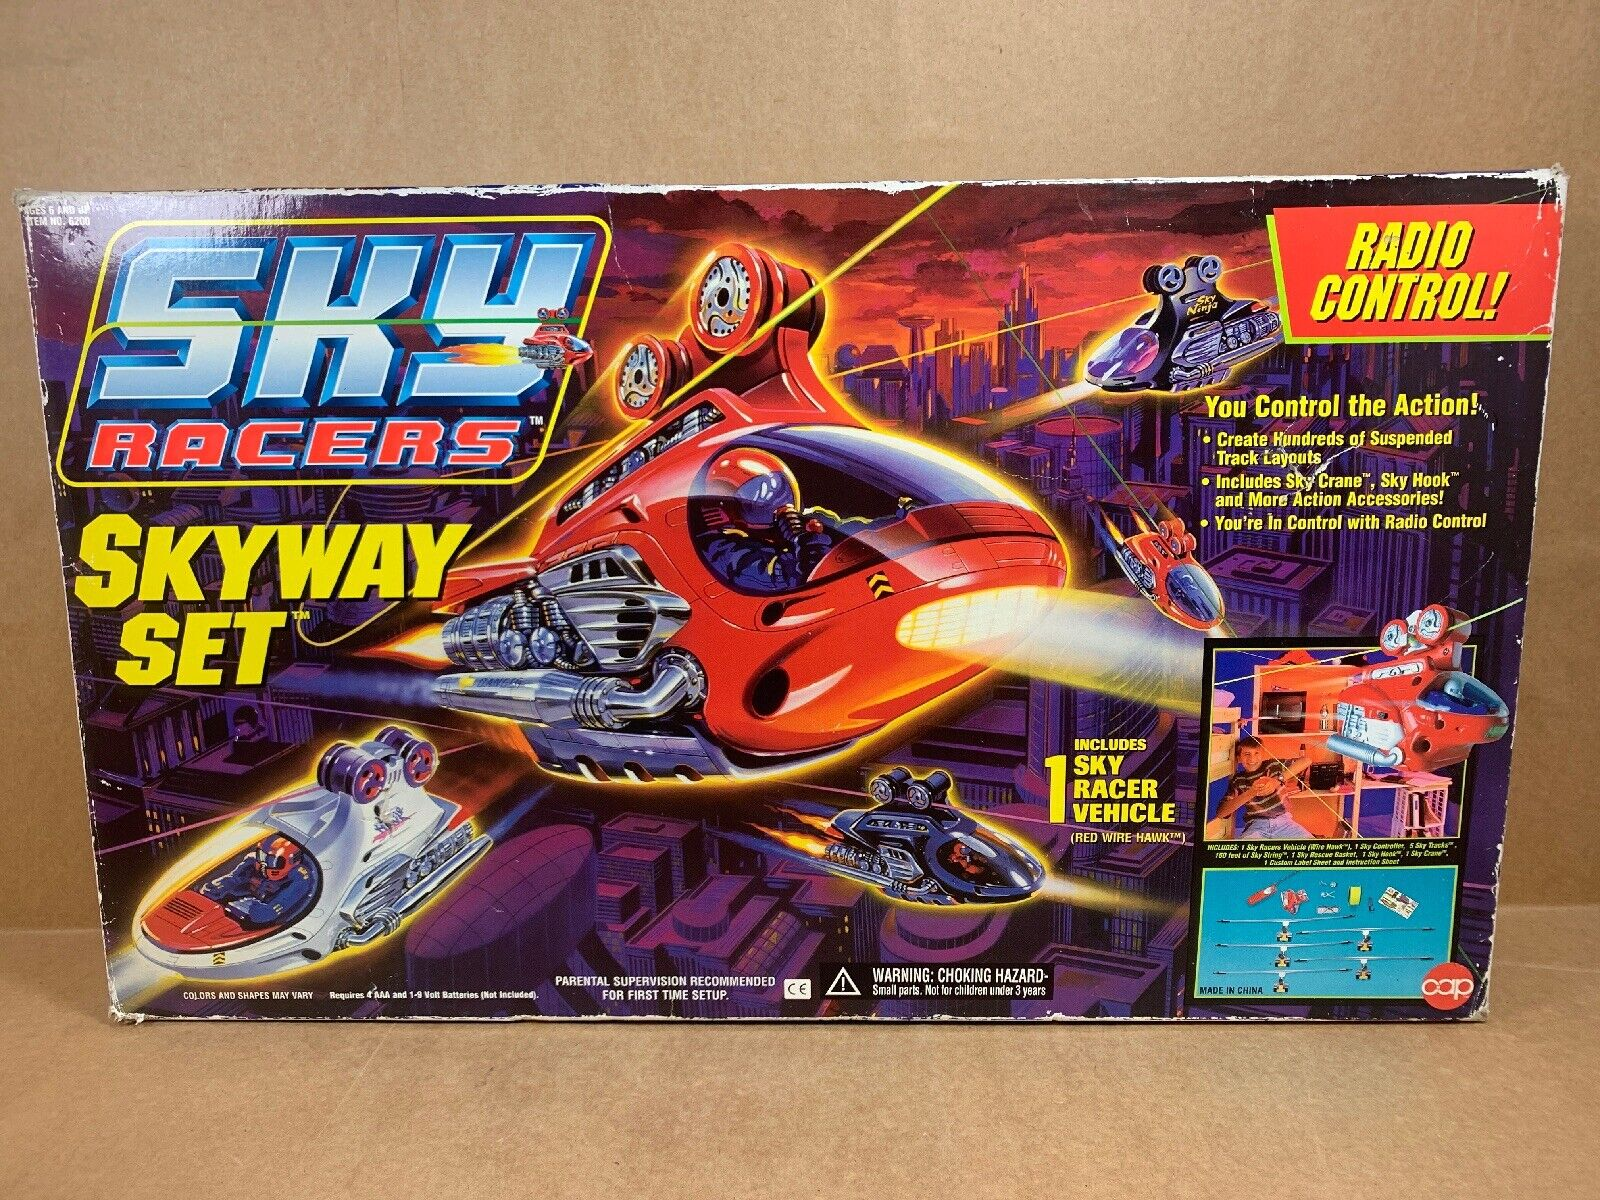 Vintage Cap Juguetes Sky Racers Skyway Set Radio Control En Caja Original con Manual de forma agradable